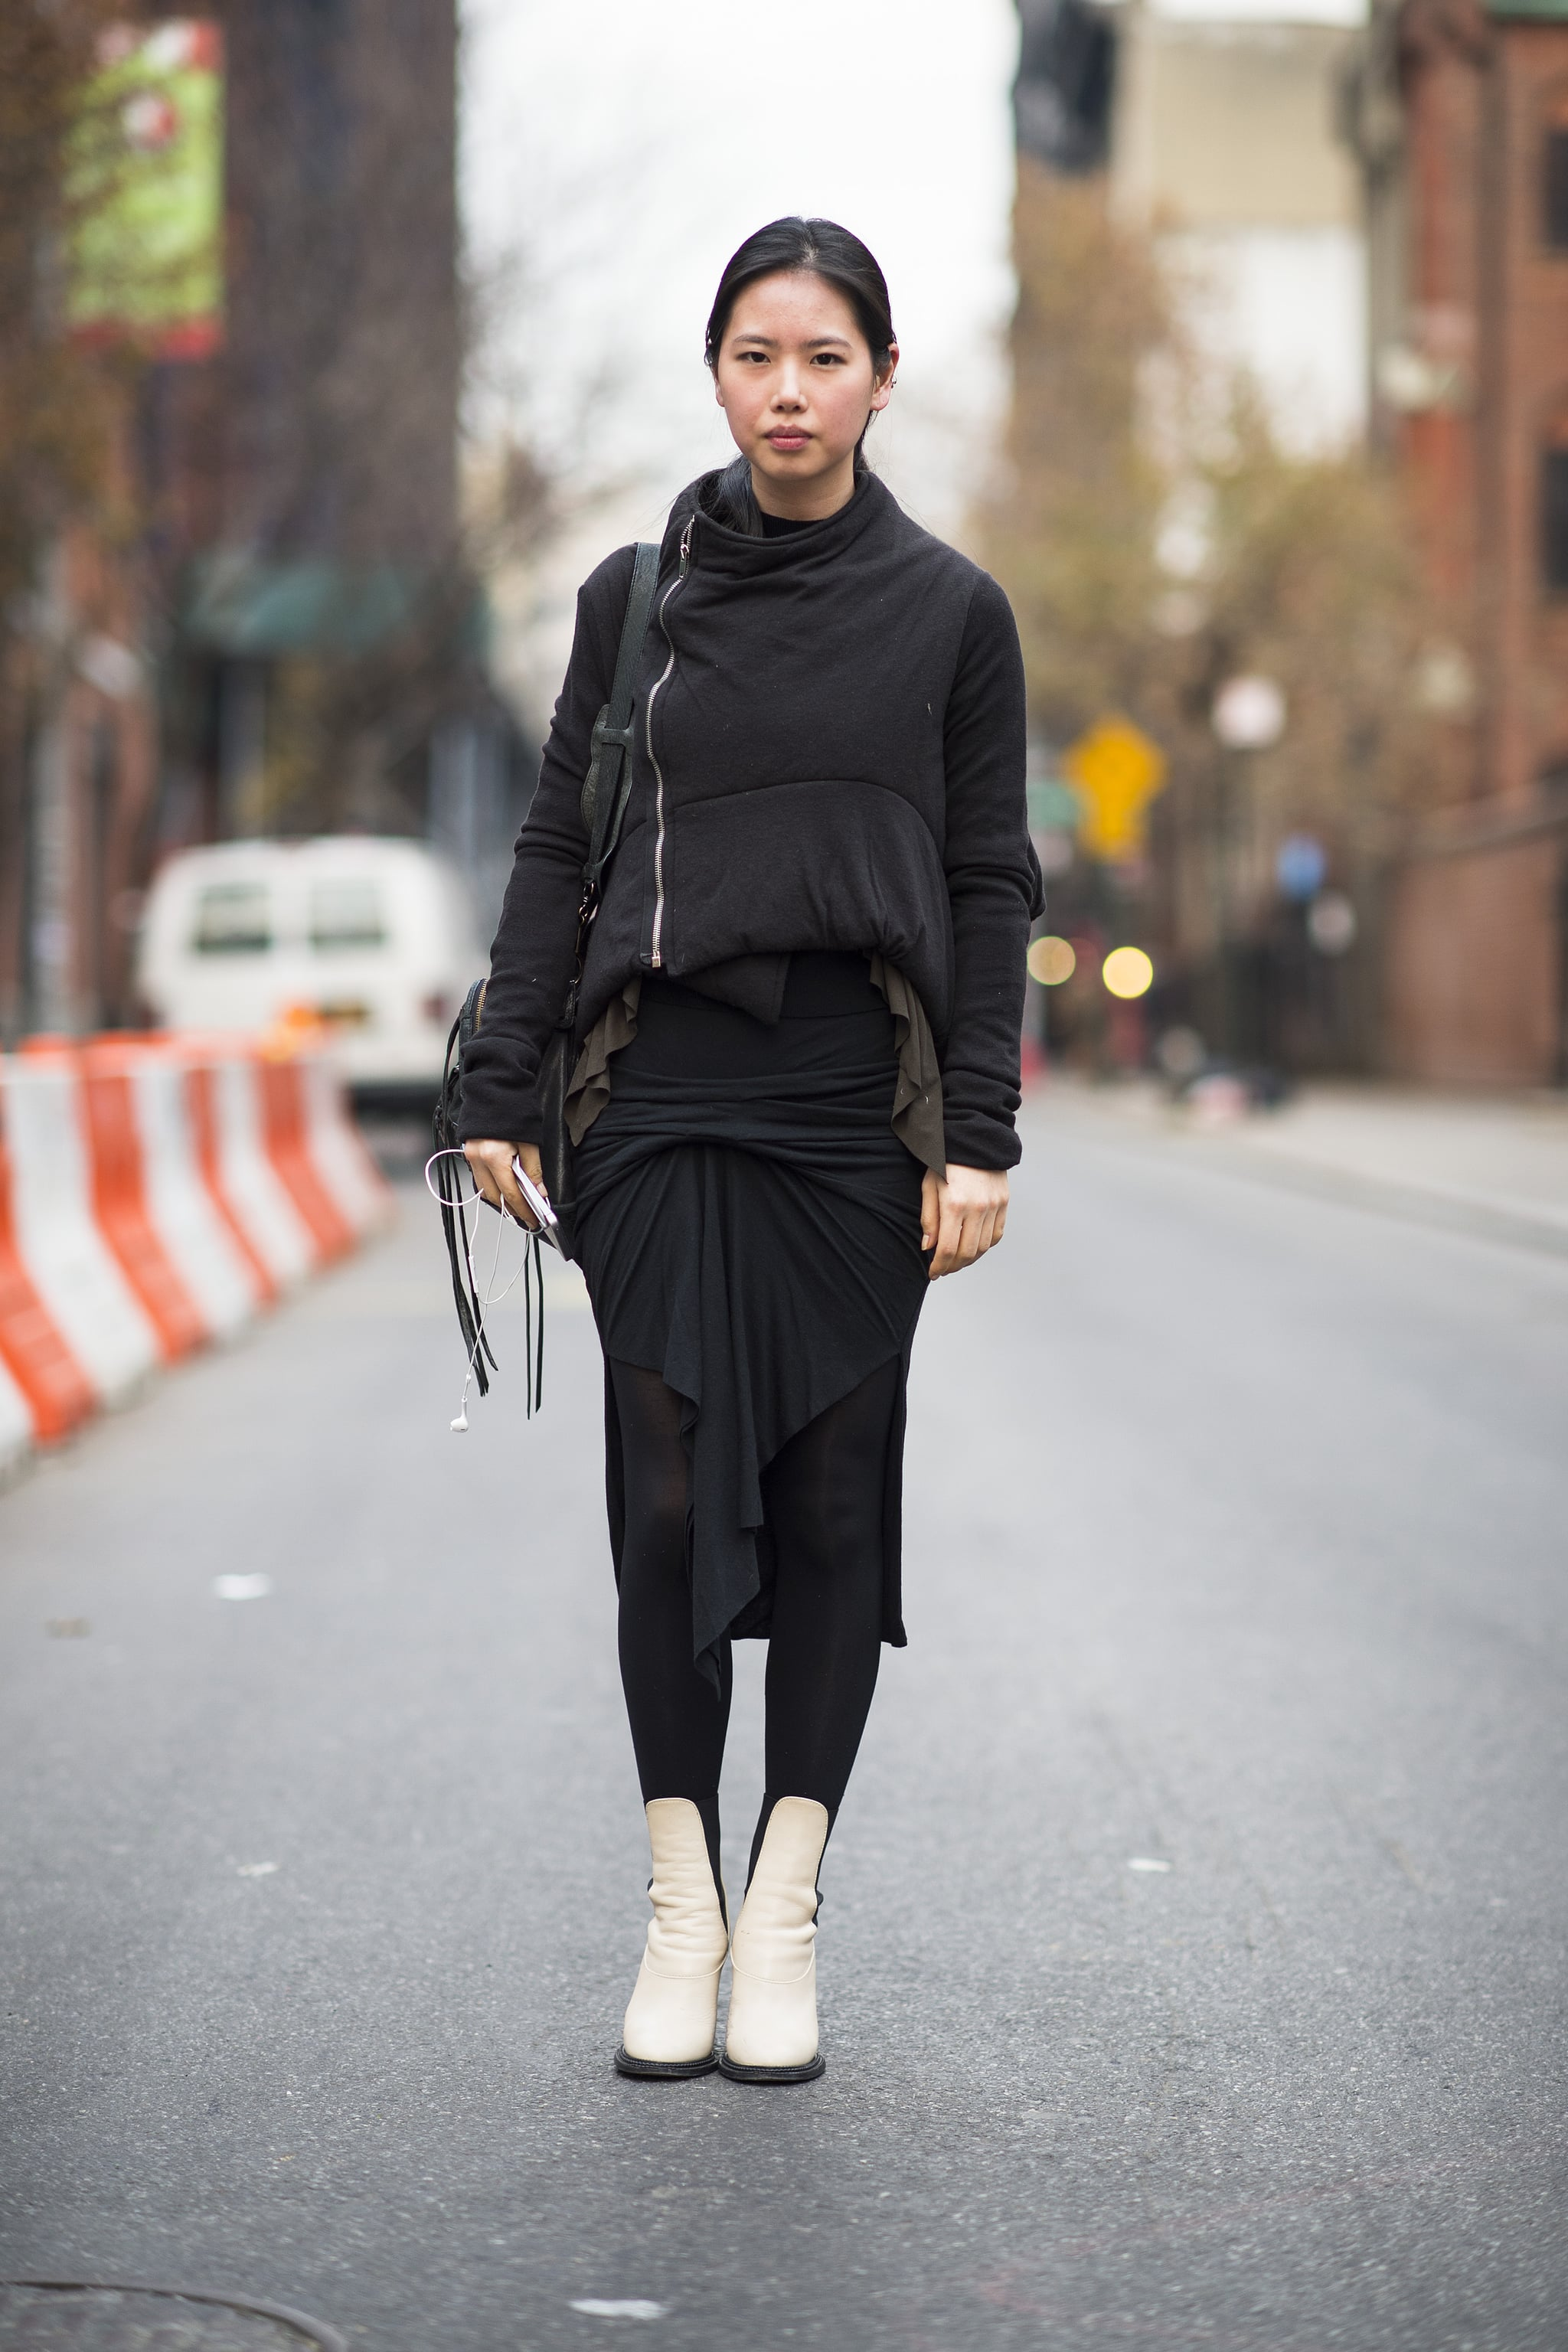 Bundling up can look downright artistic with the right draping.  Source: Le 21ème   Adam Katz Sinding